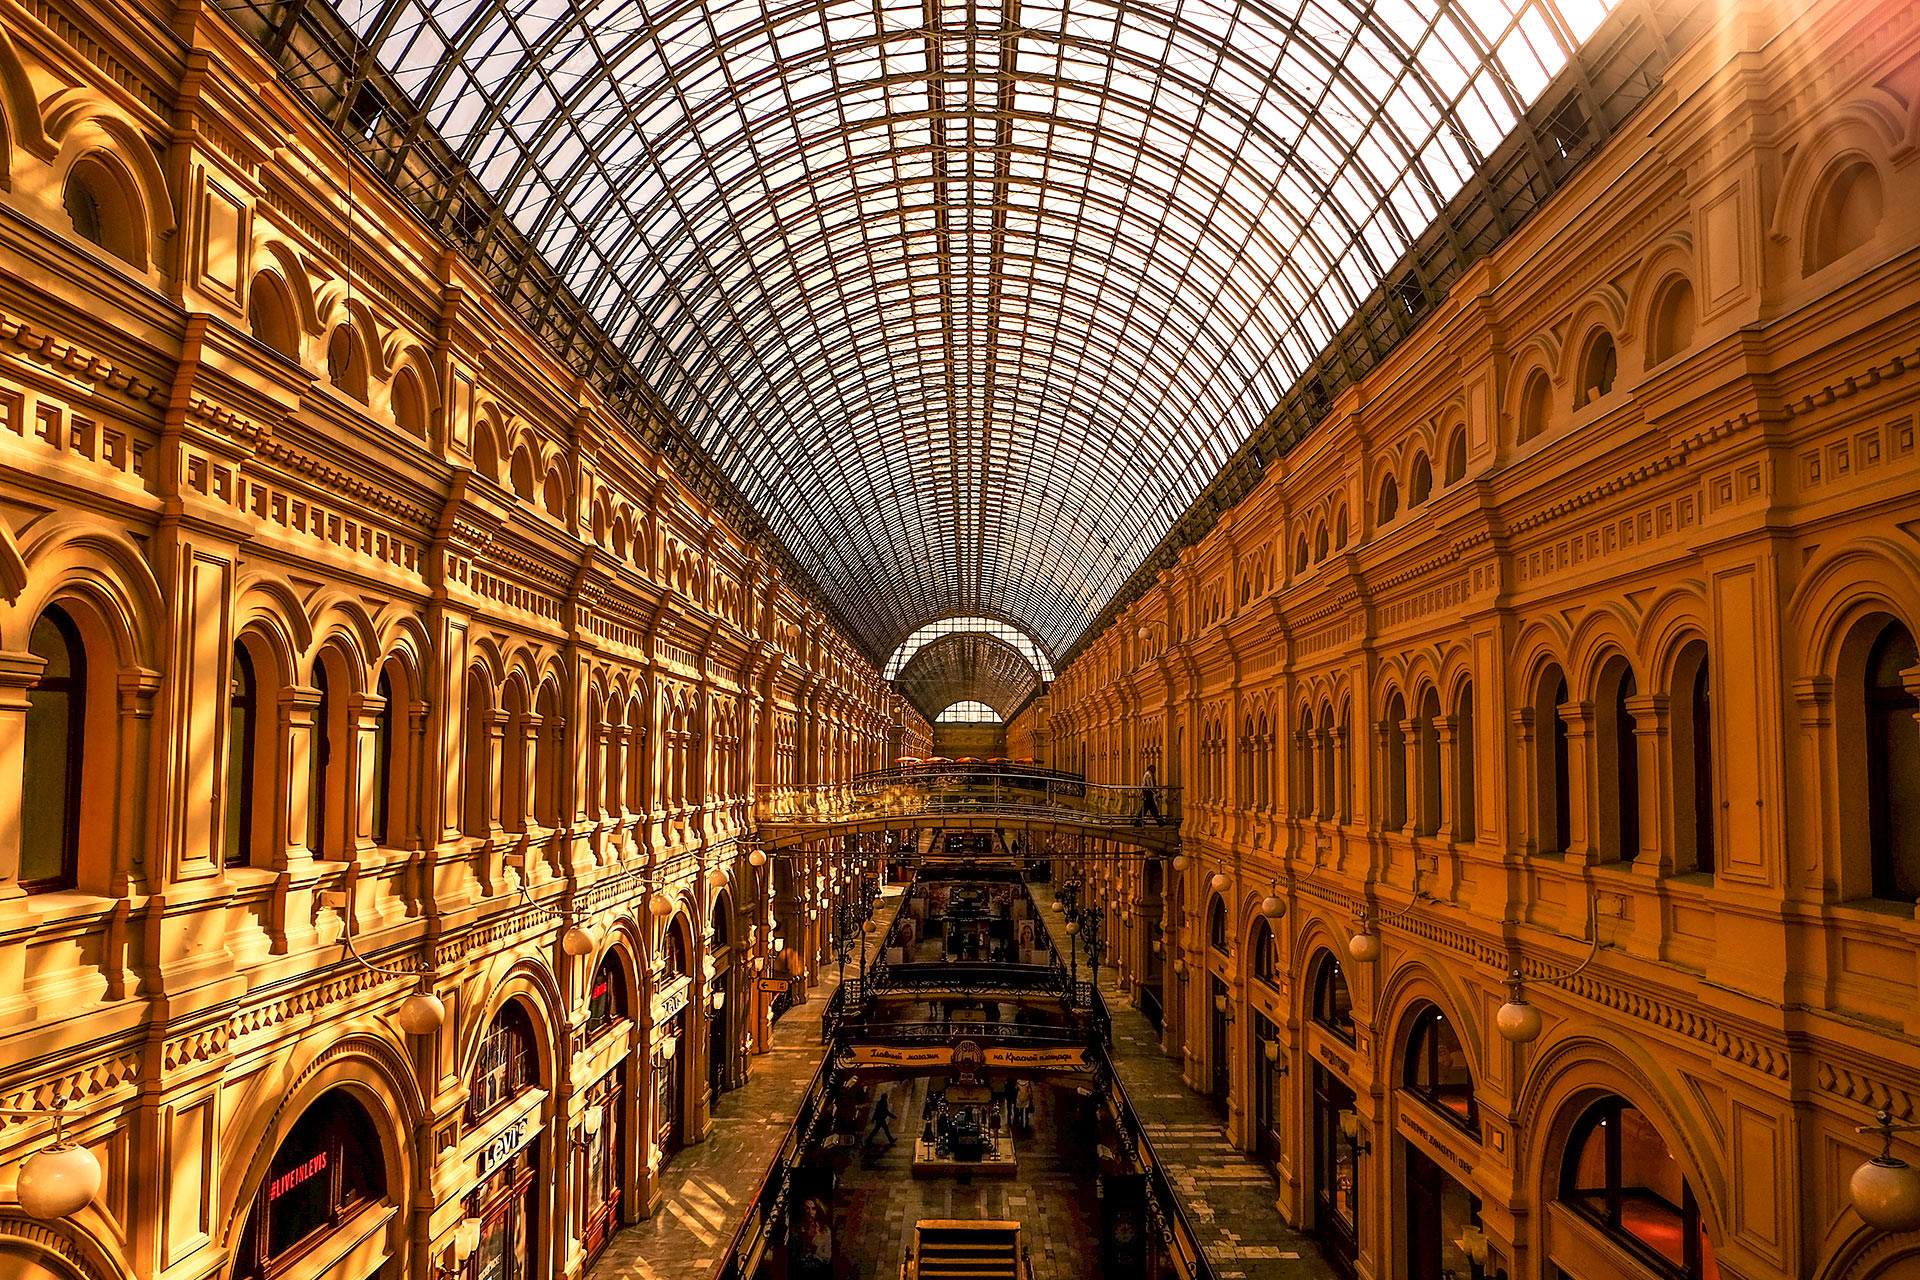 The roof of GUM, Russia's most beautiful shopping center